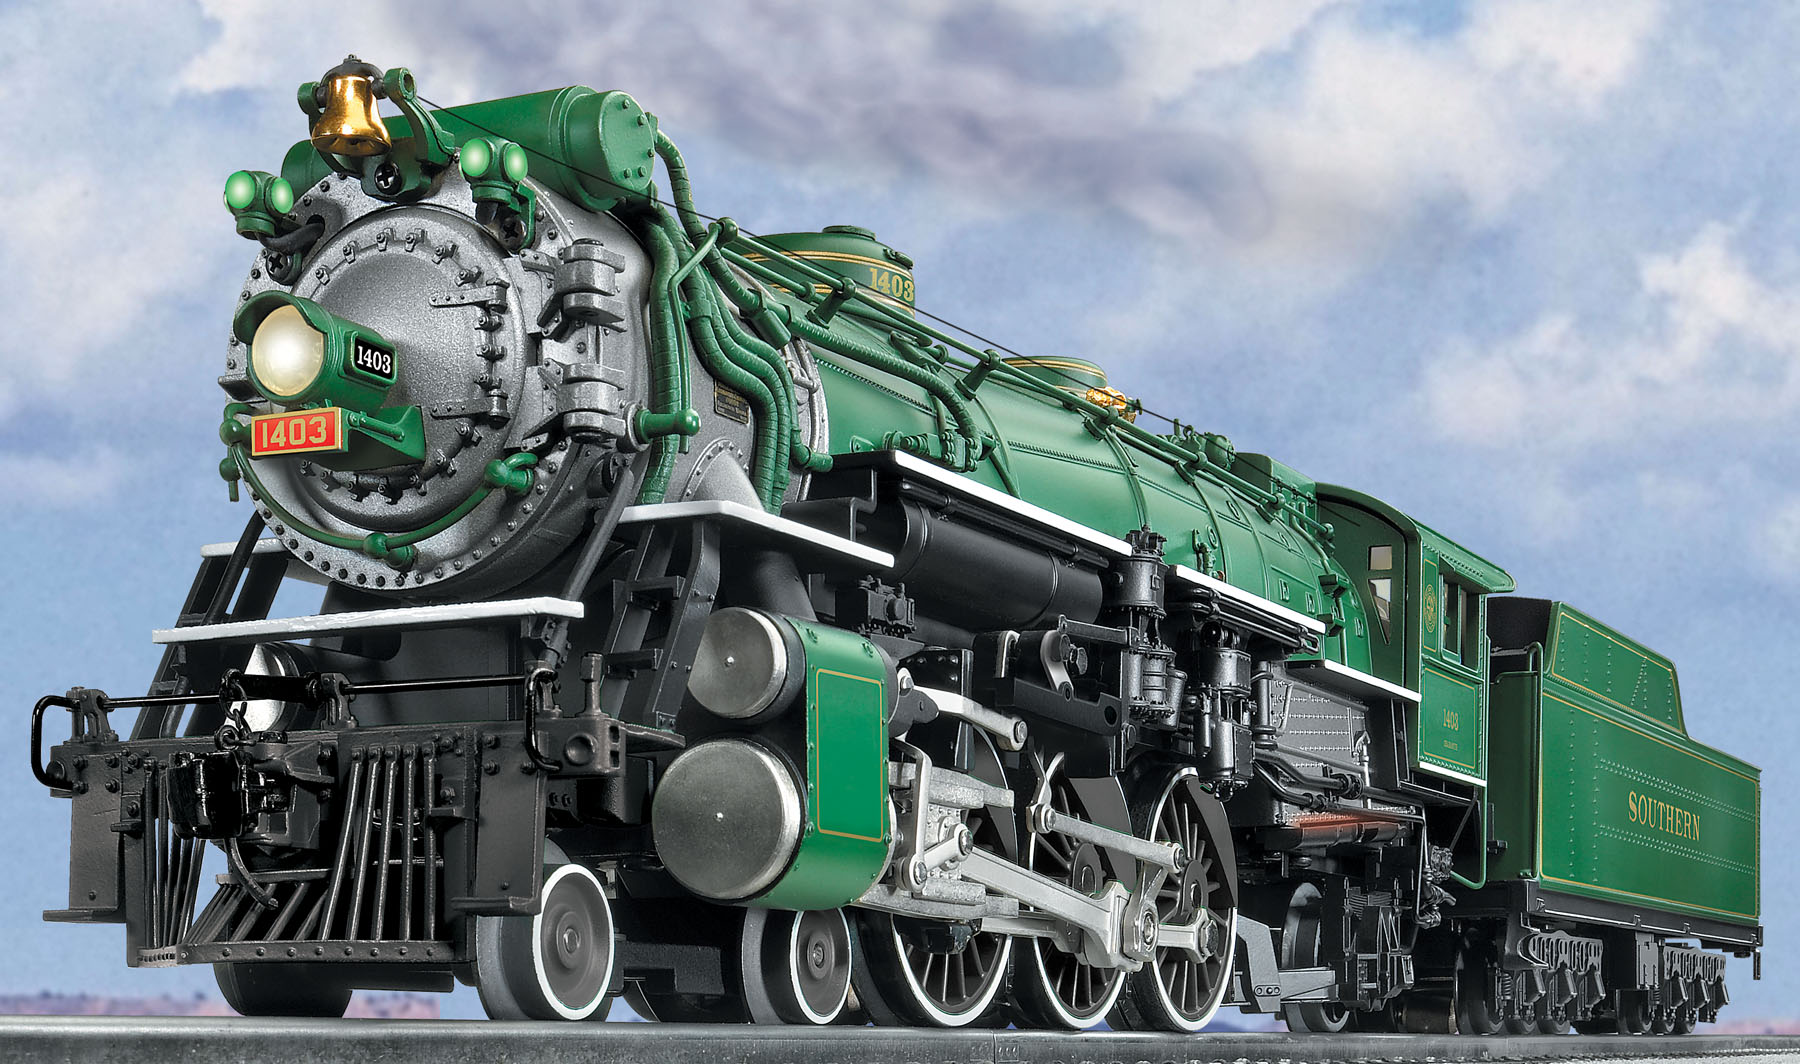 SOUTHERN PS-4 SCALE 4-6-2 PACIFIC #1403 SKU: 6-11103